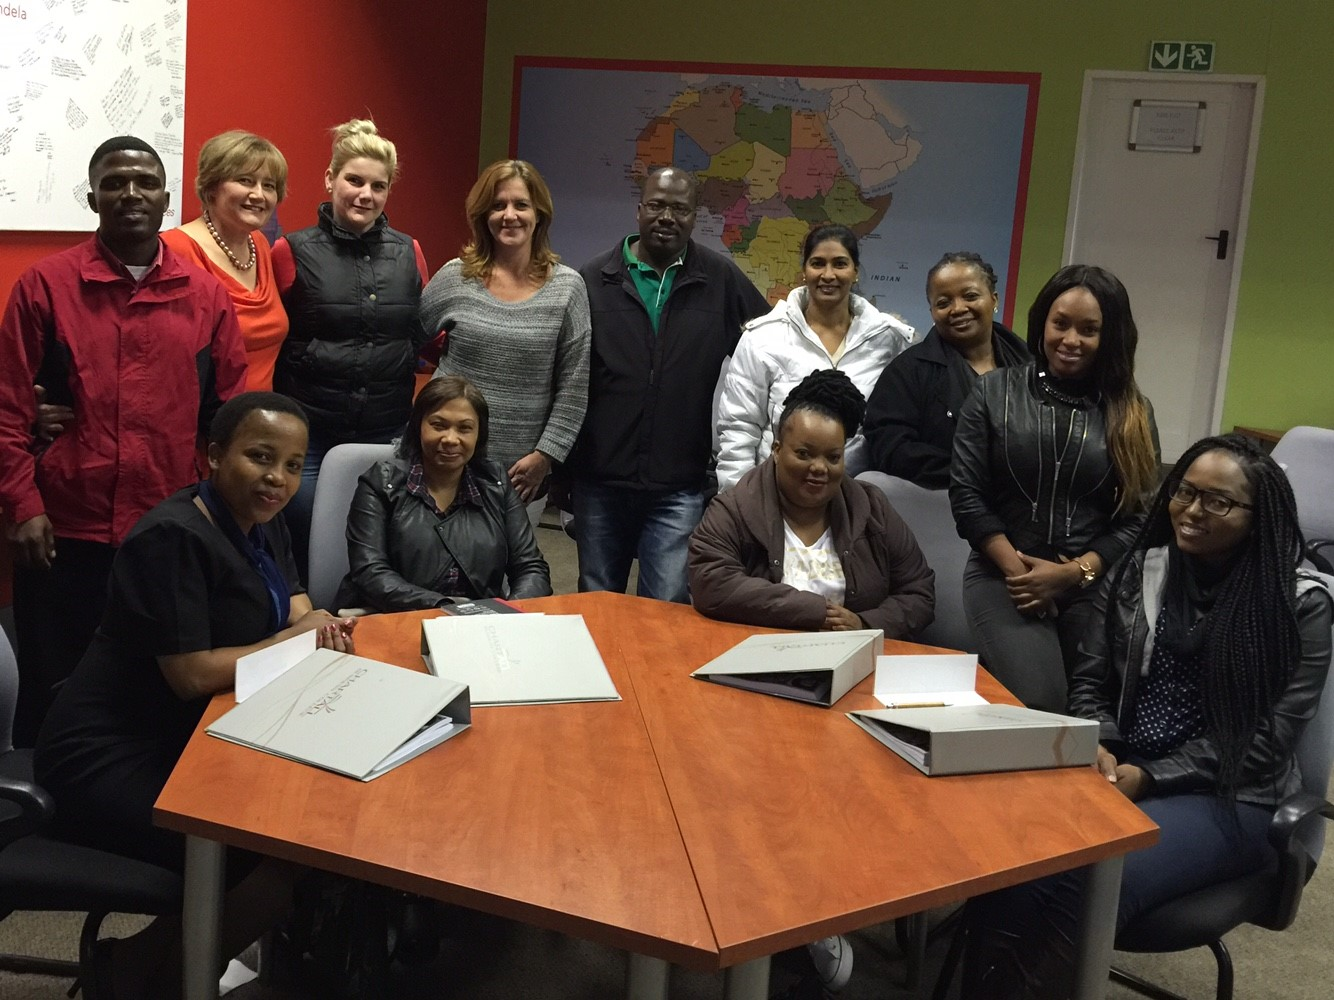 Starting a new learnership with Chartall Business college